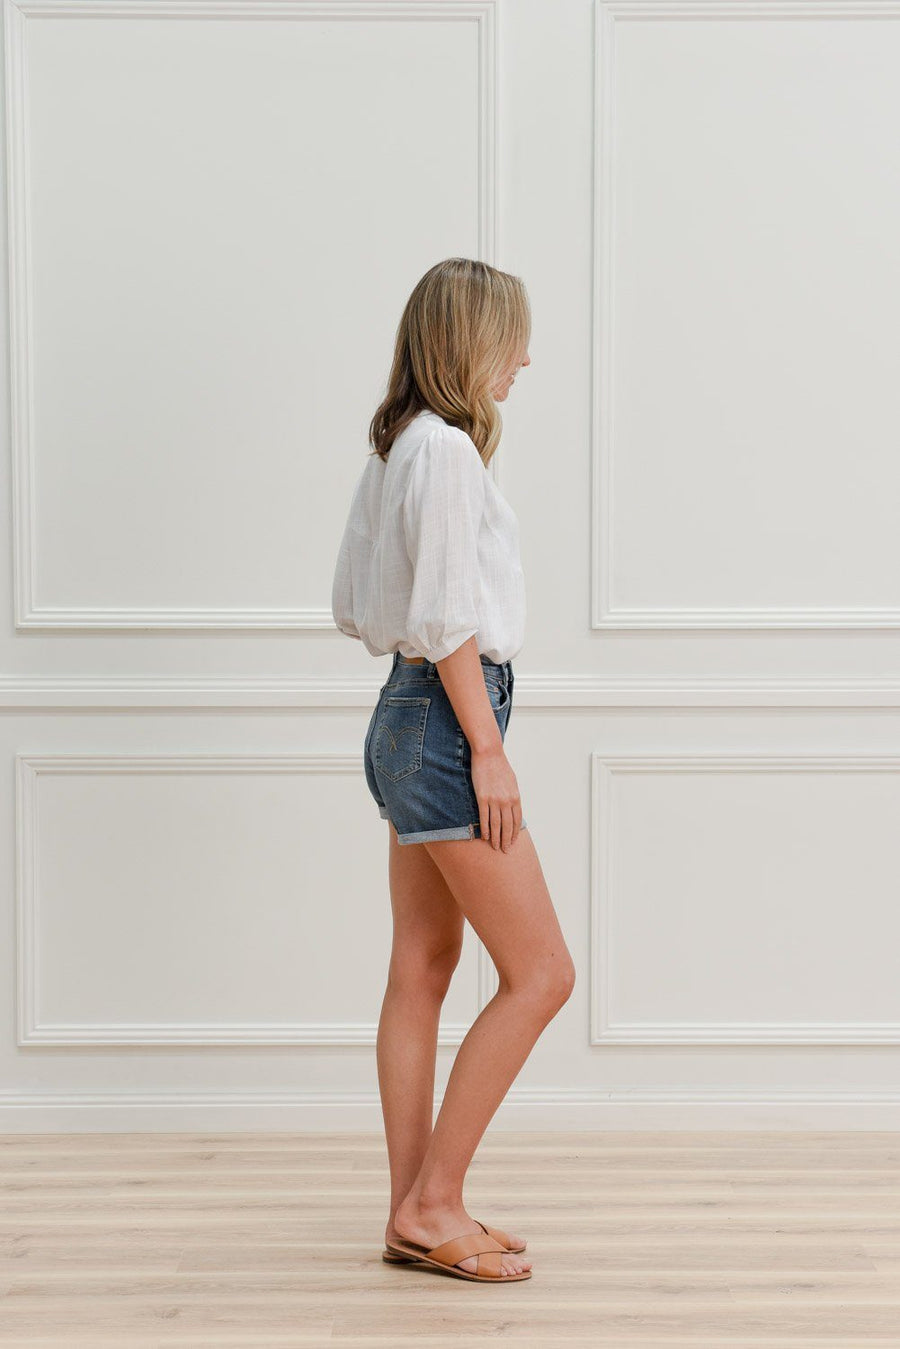 Eve Denimn Shorts | Mid Blue Shorts Gray Label